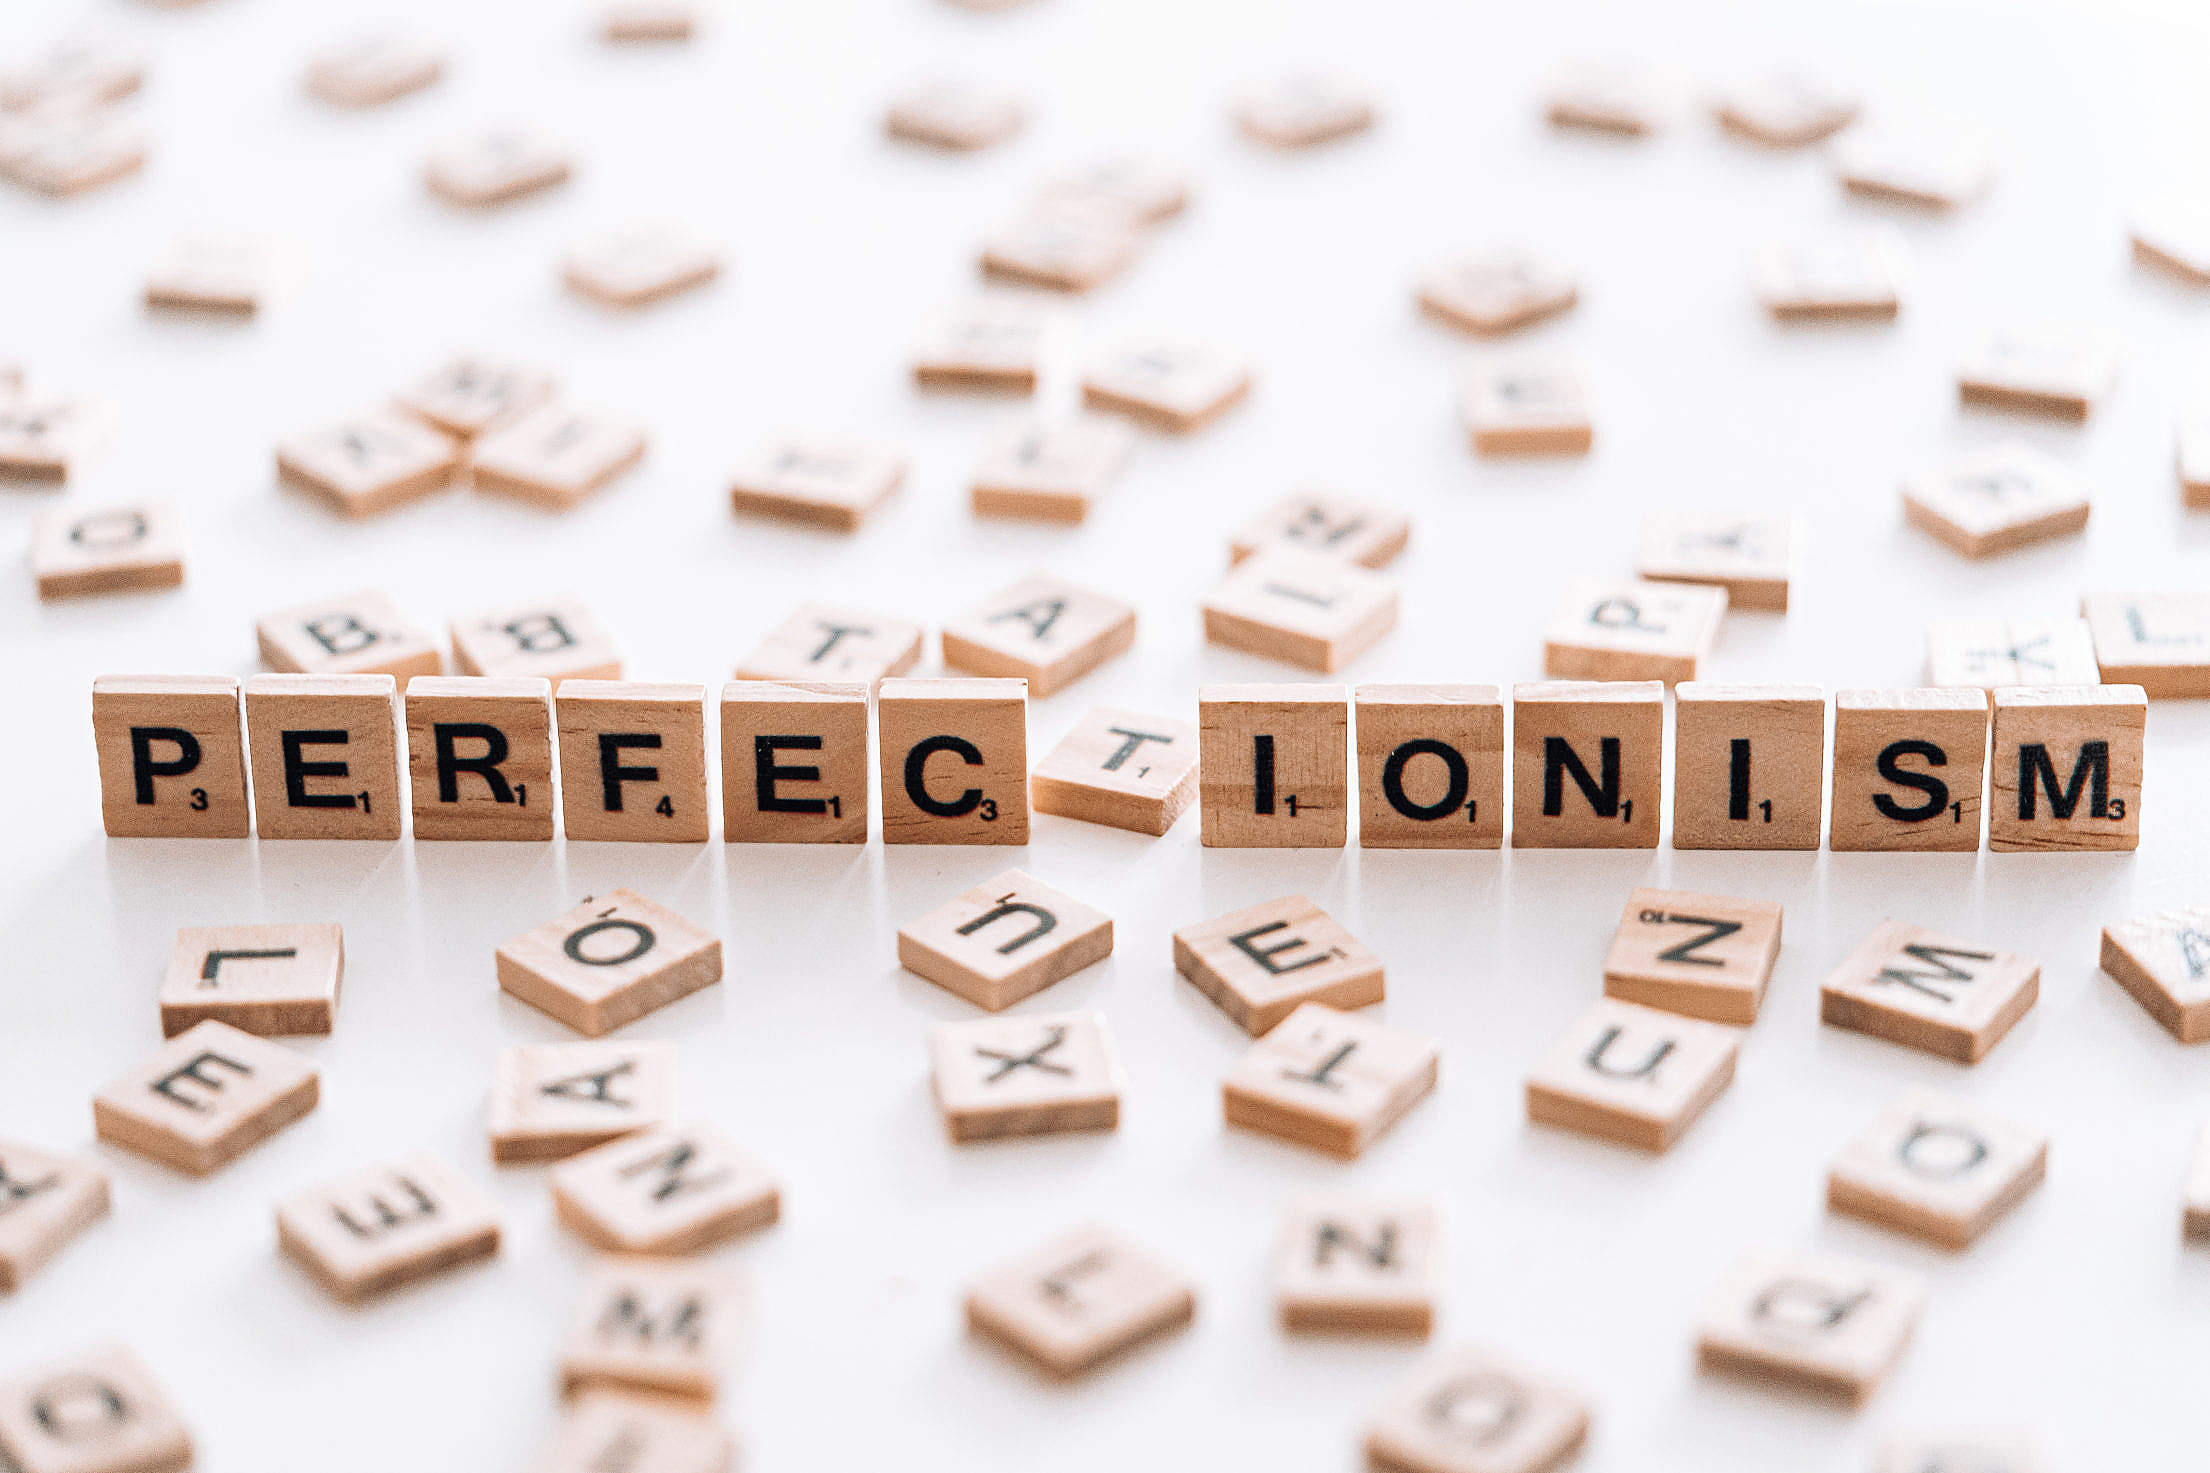 Perfectionism Imperfect Free Stock Photo